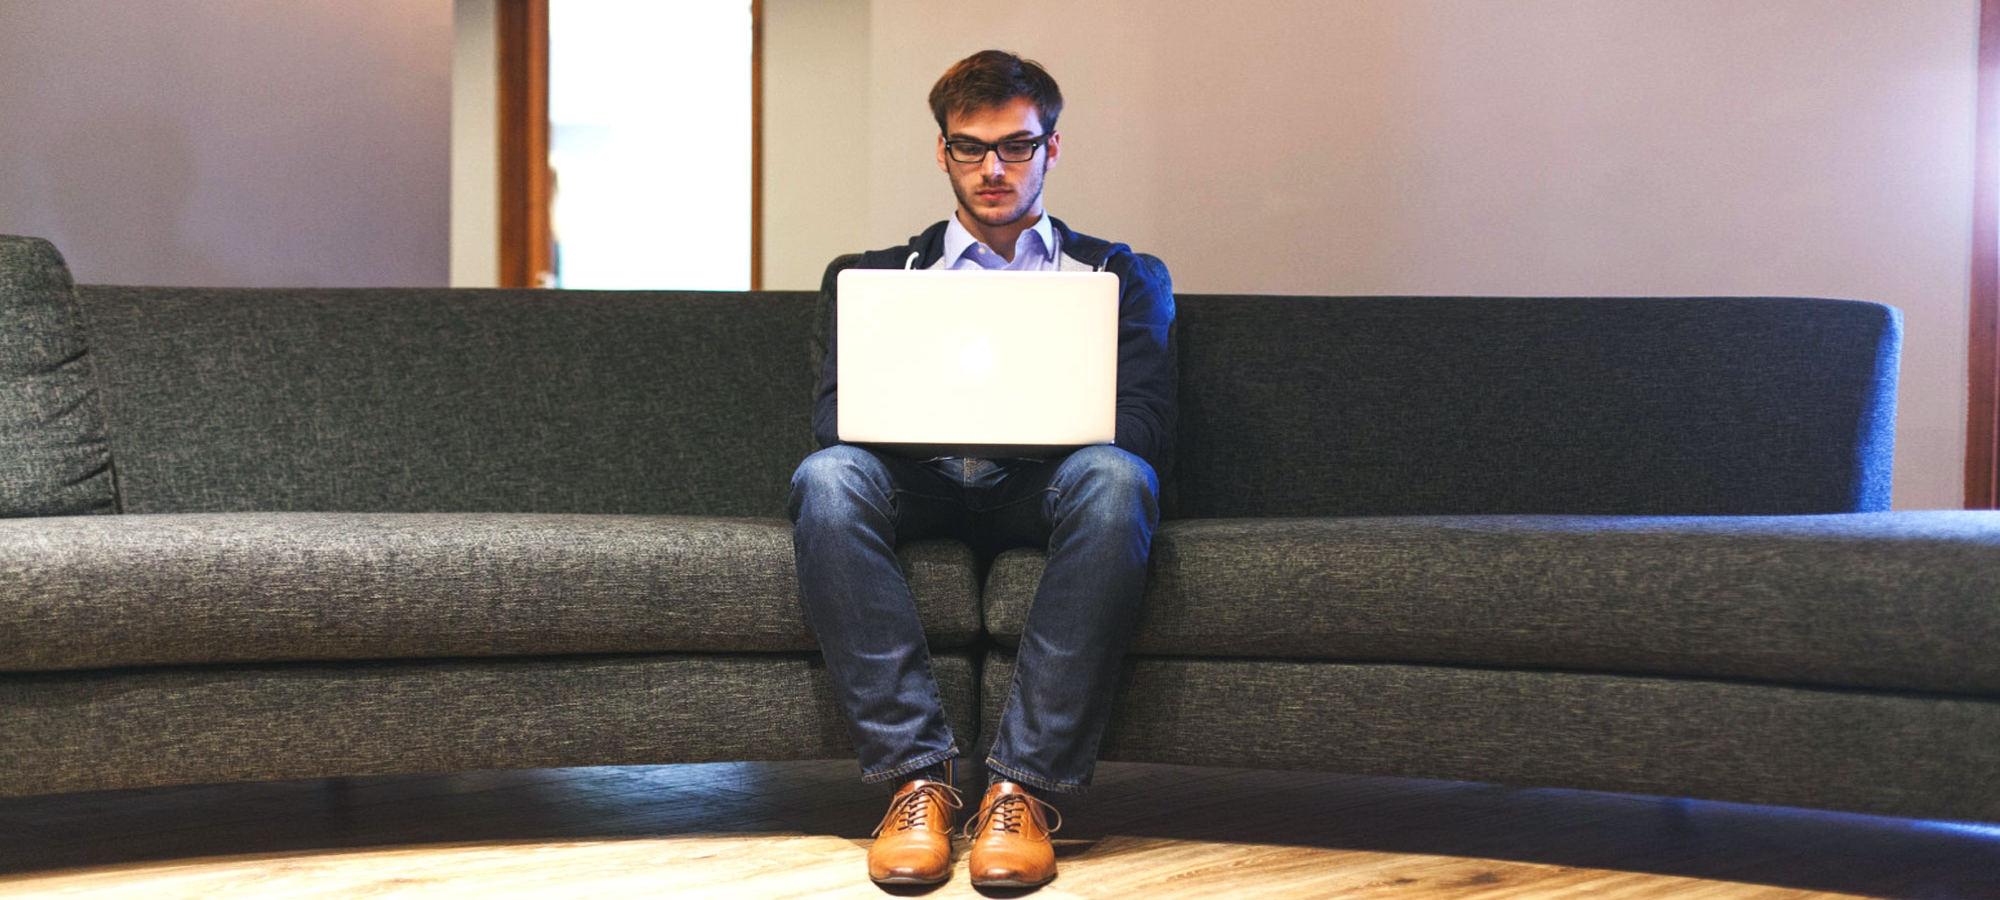 Student using computer sitting on couch